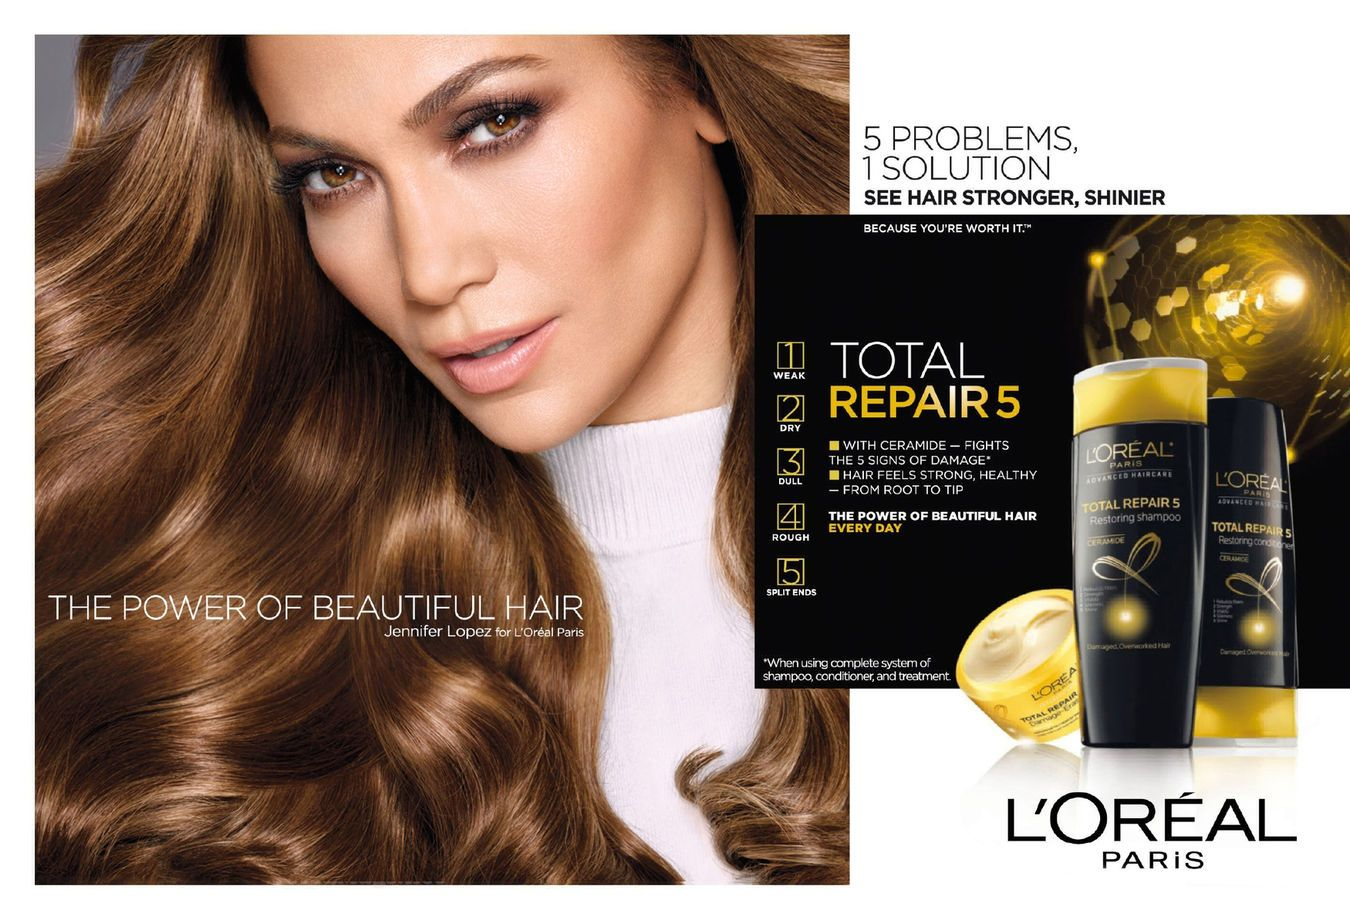 Pin by IR.m on Hair and Beauty  Loreal hair, Haircut prices